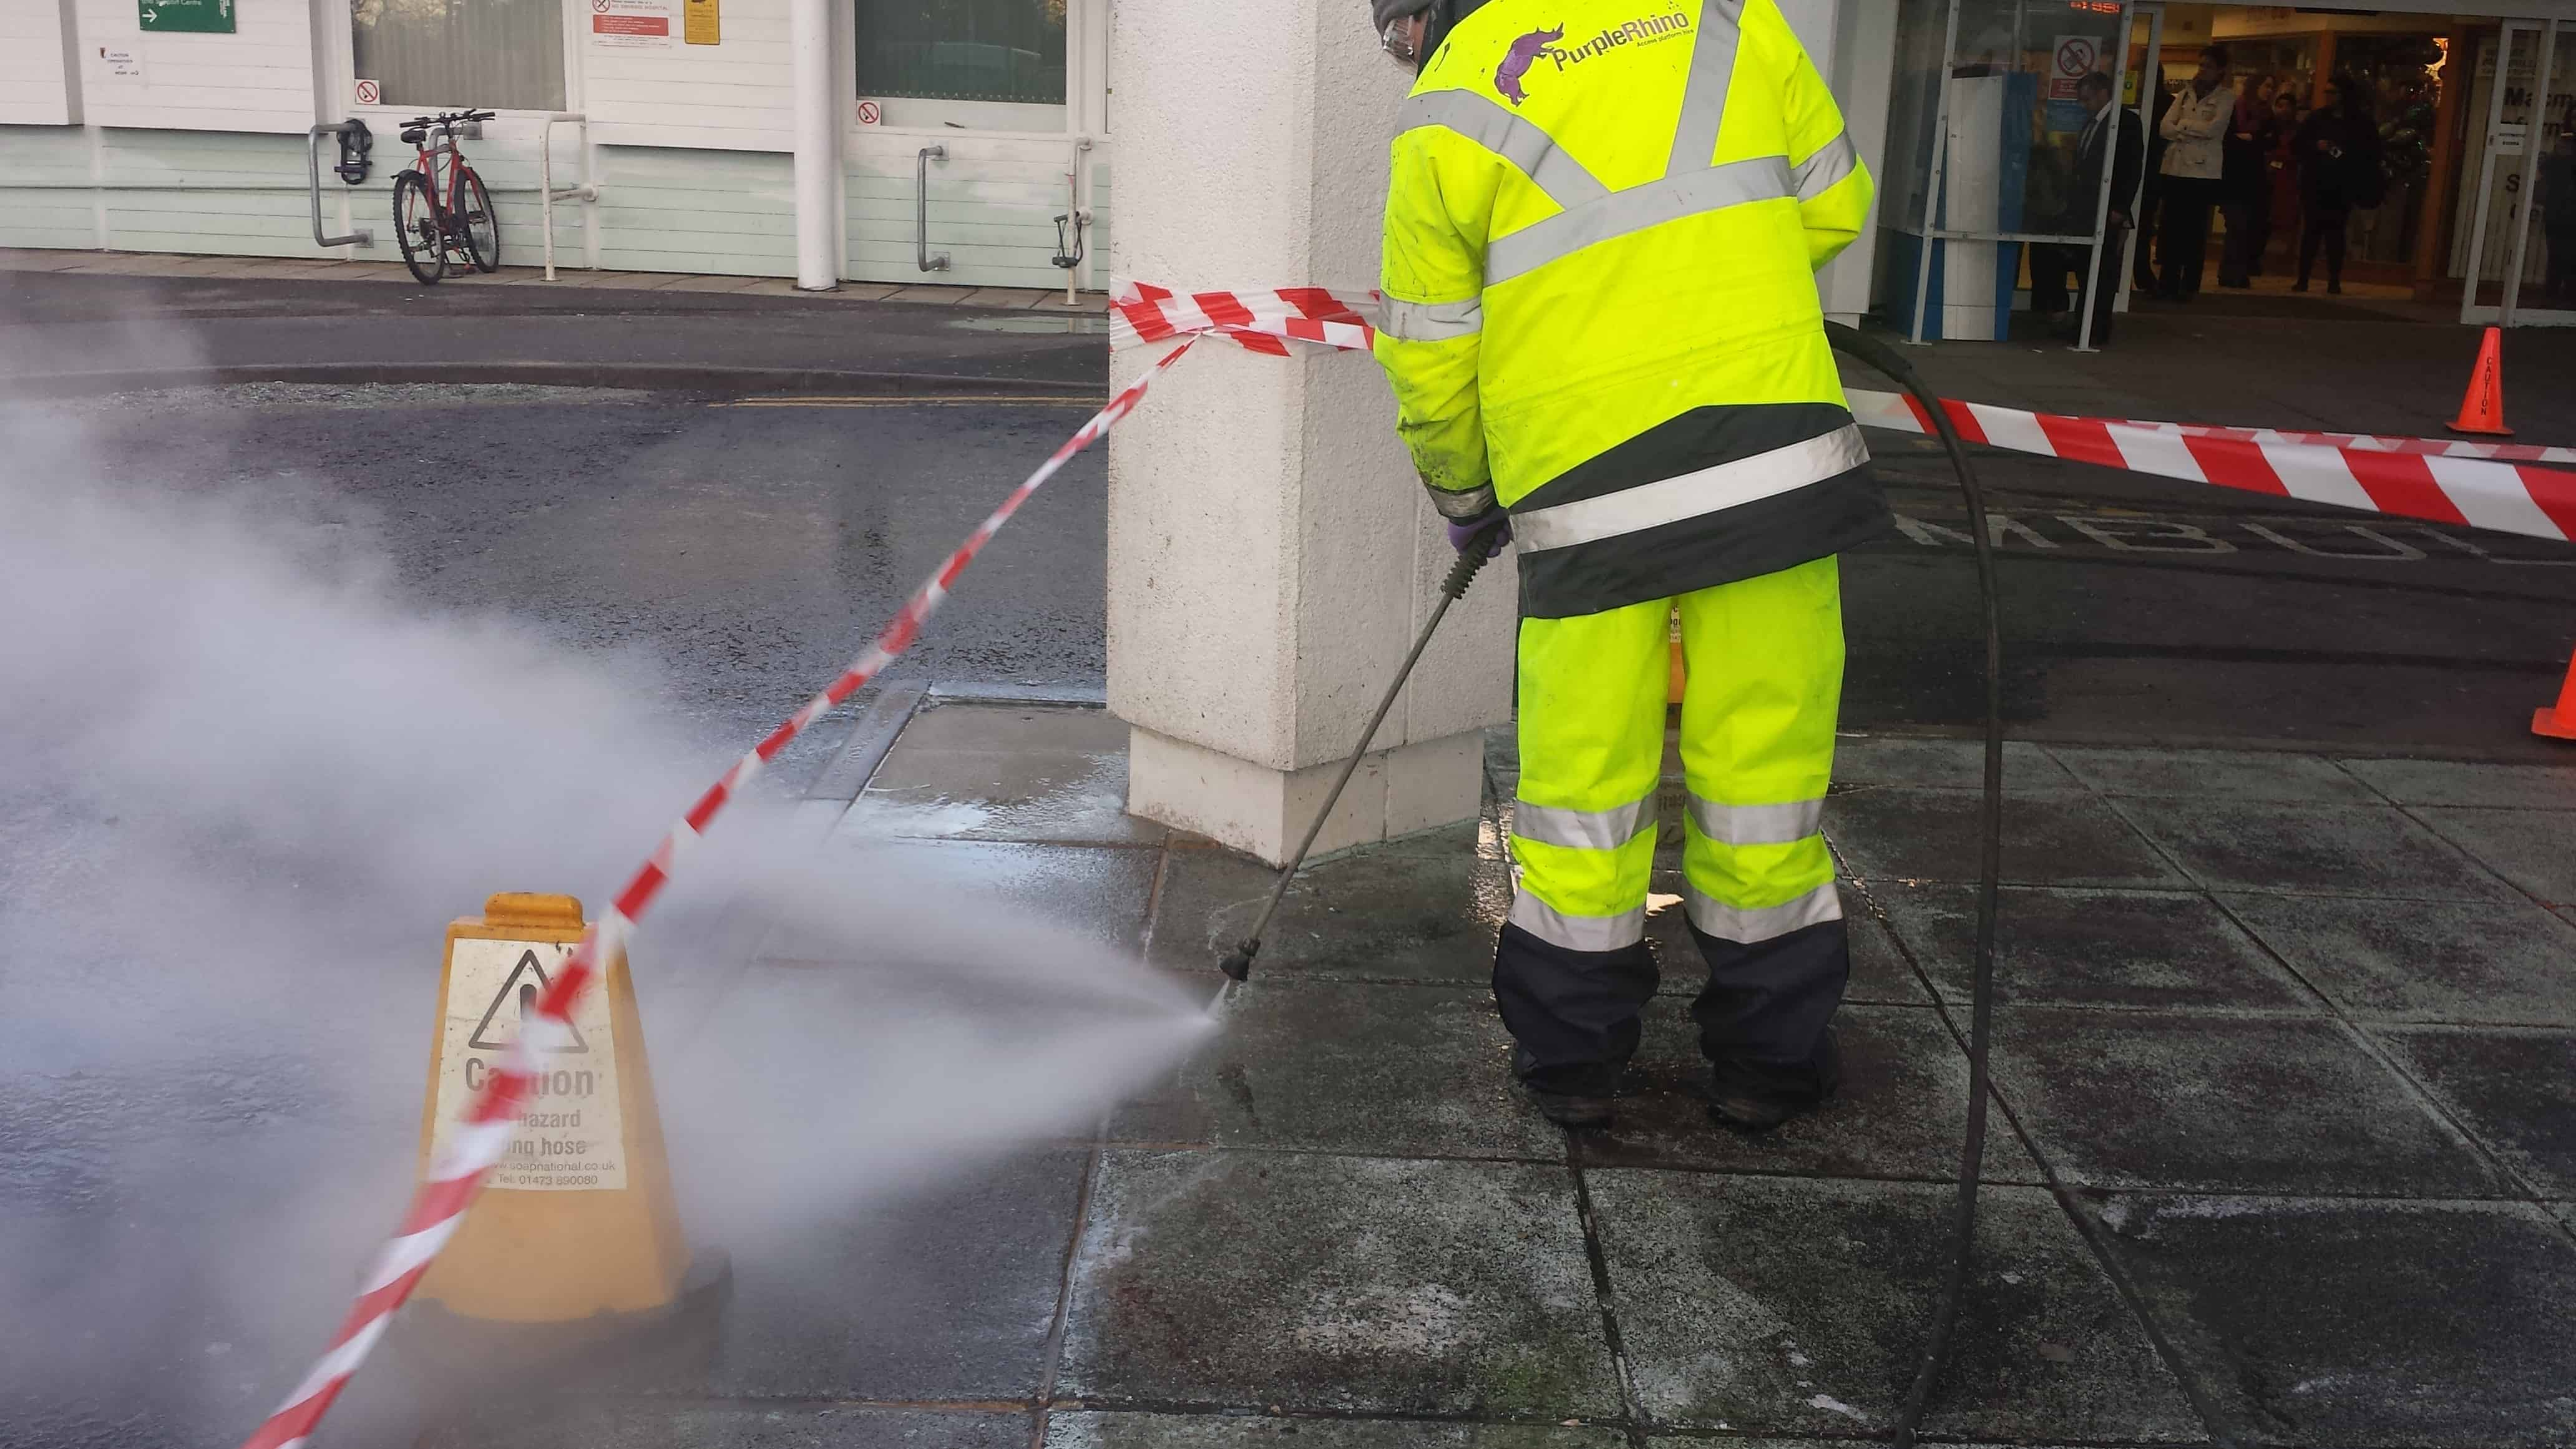 pressure-washer-service-from-purple-rhino-co-uk